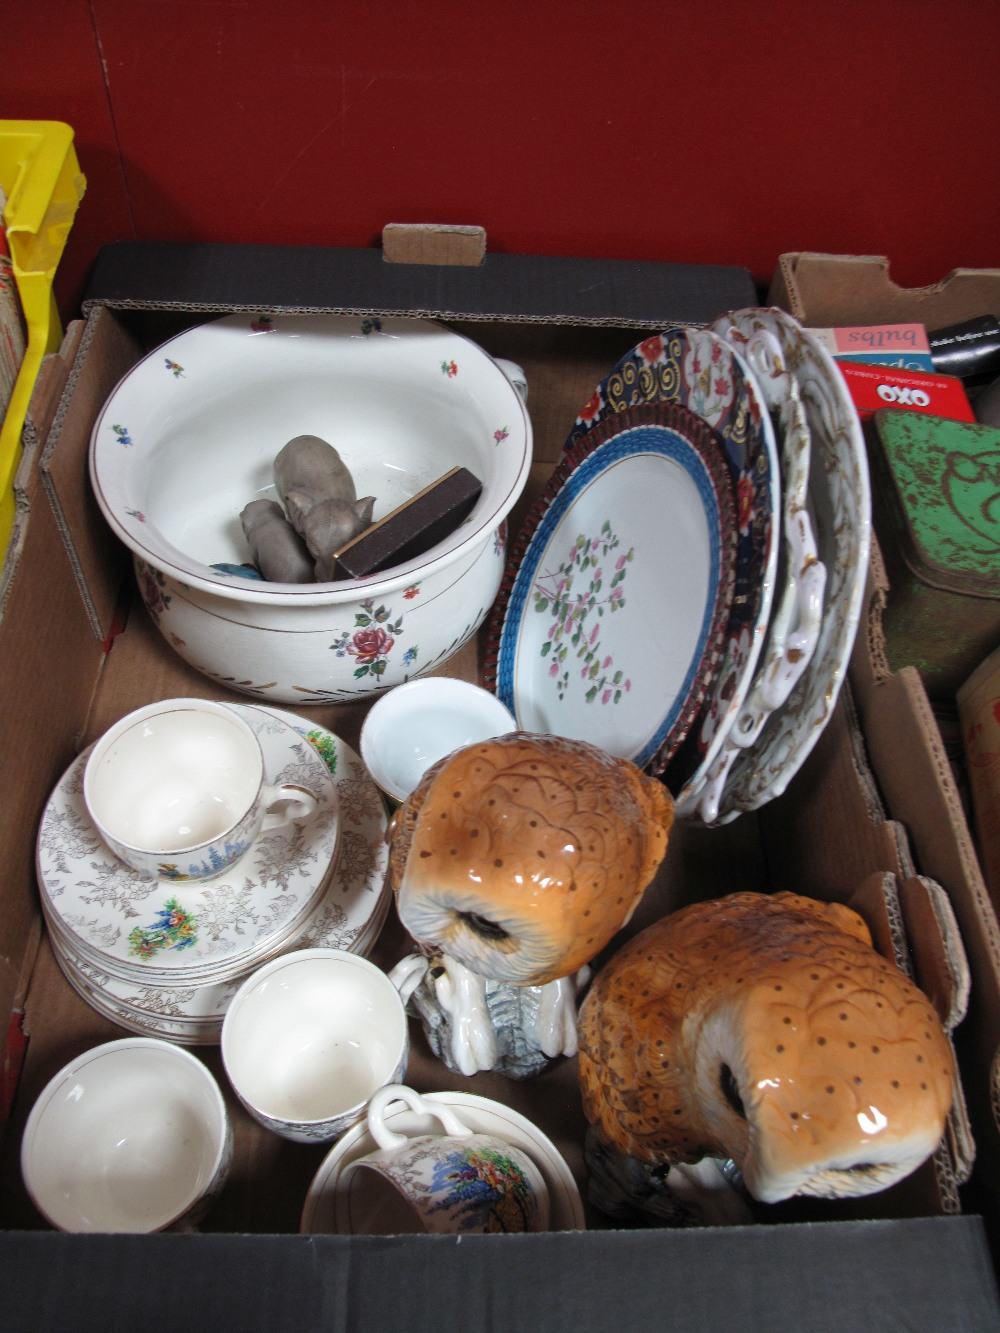 Lot 11 - Minton and Other Plates, pair of Leonardo owls, chamber pot, etc:- One Box